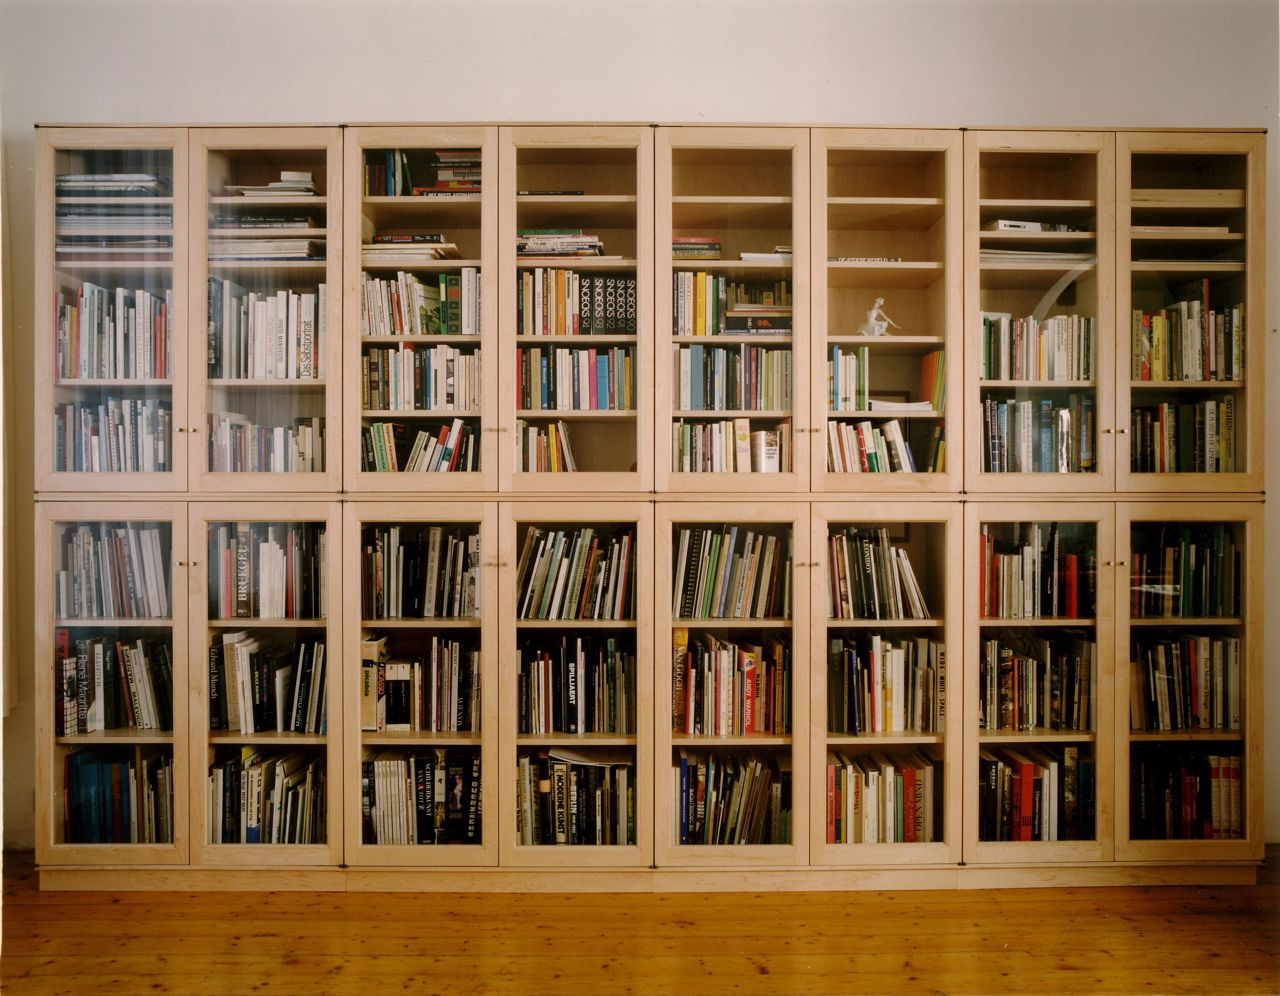 Bookcases frits kuitenbrouwer tailor made furniture page 2 - Muur bibliotheek ...